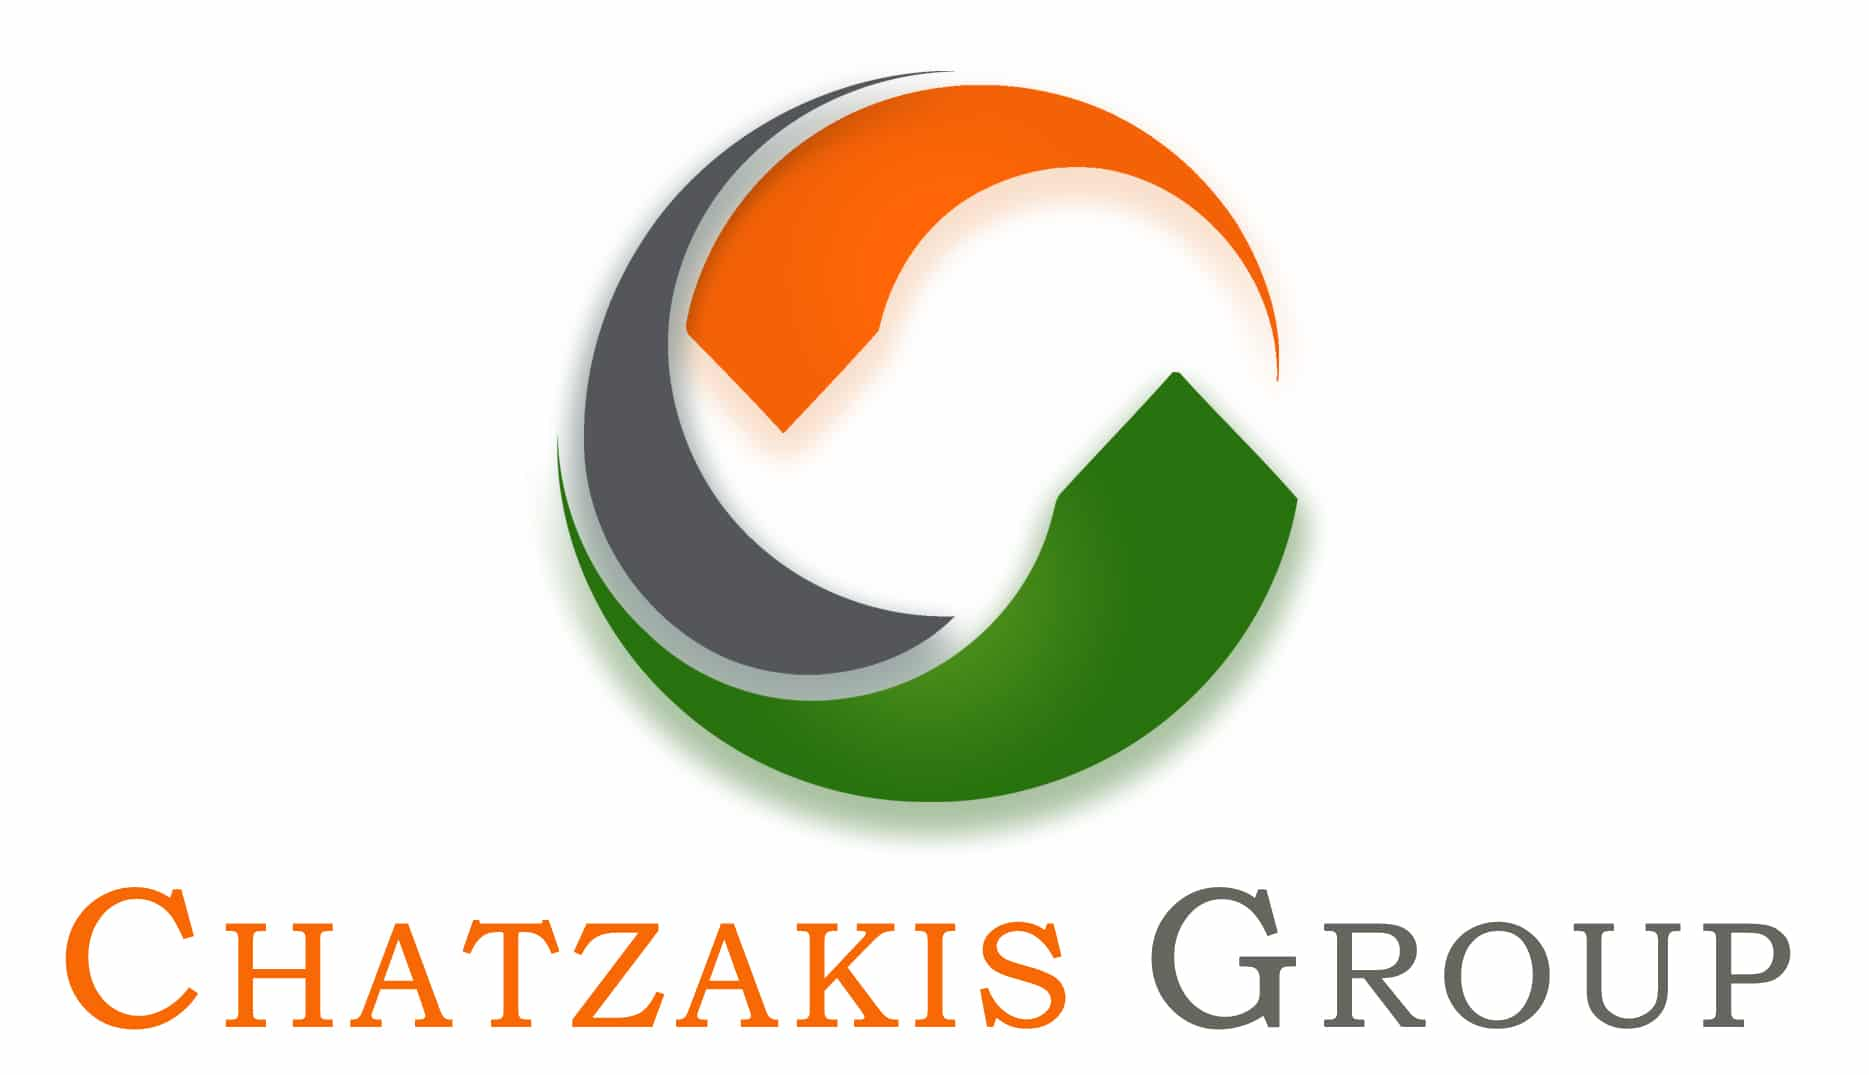 Chatzakis Group